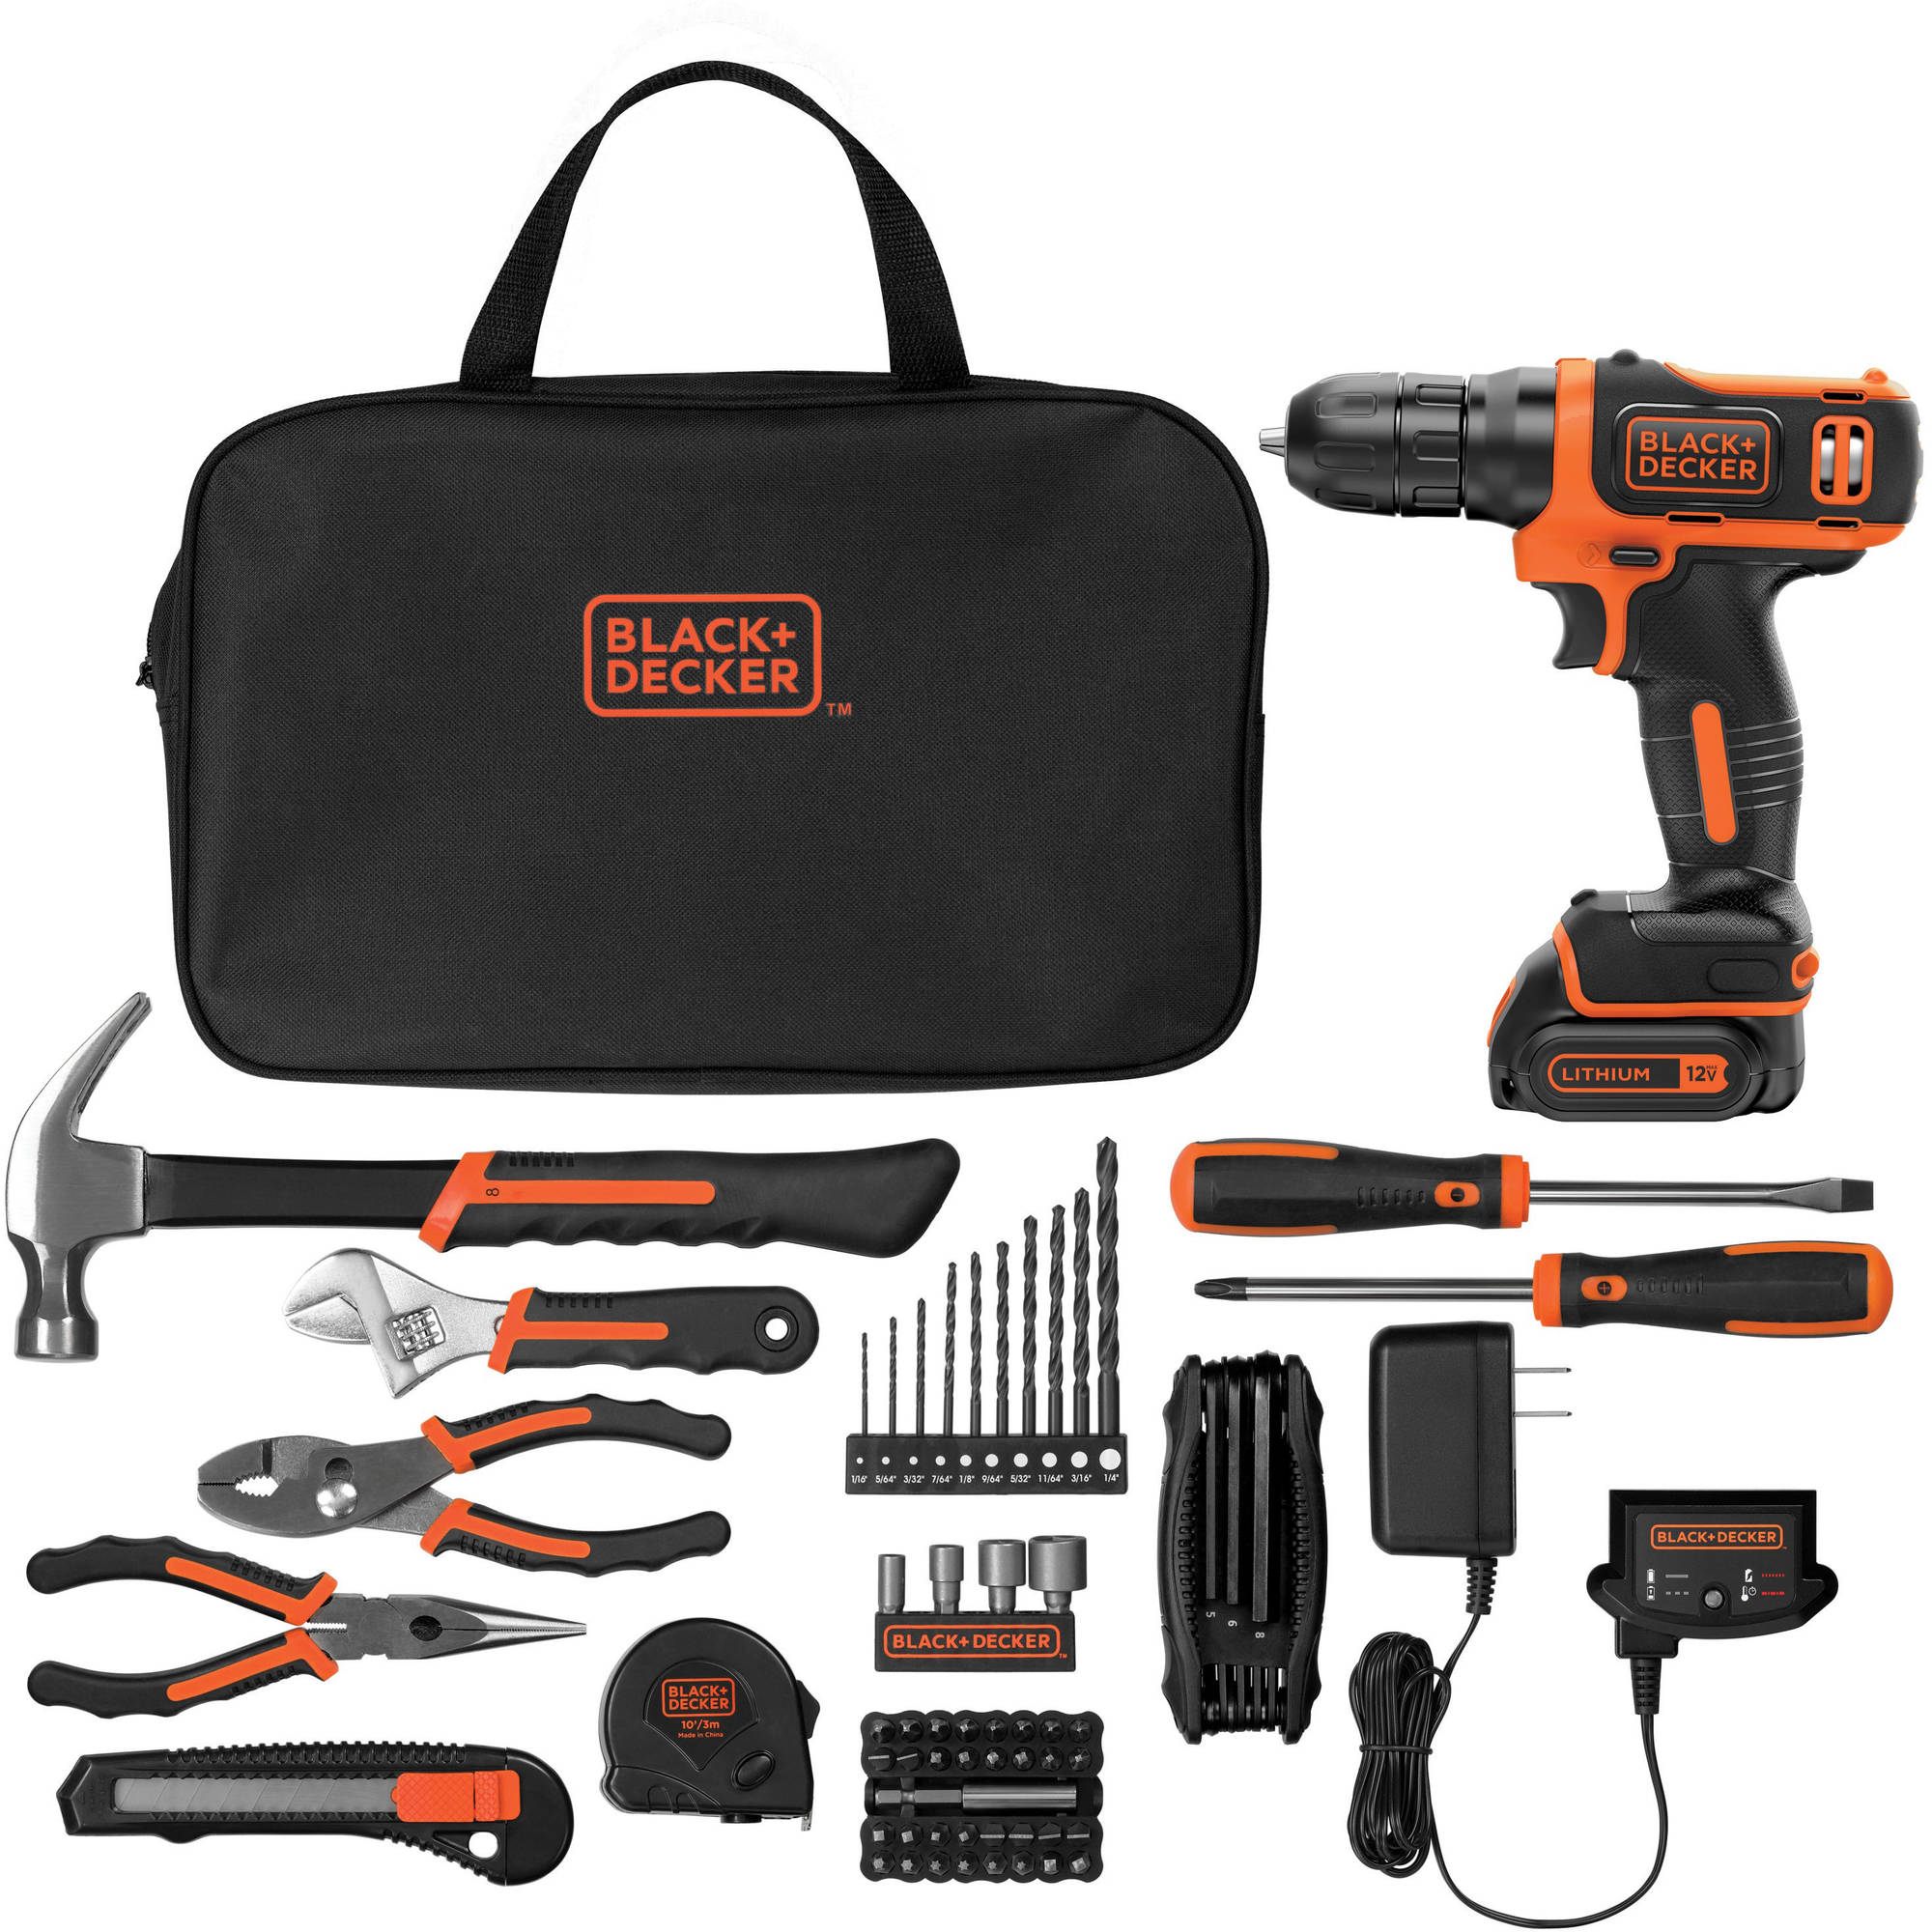 Black & decker rechargeable drill driver 12v with 100 accessories.